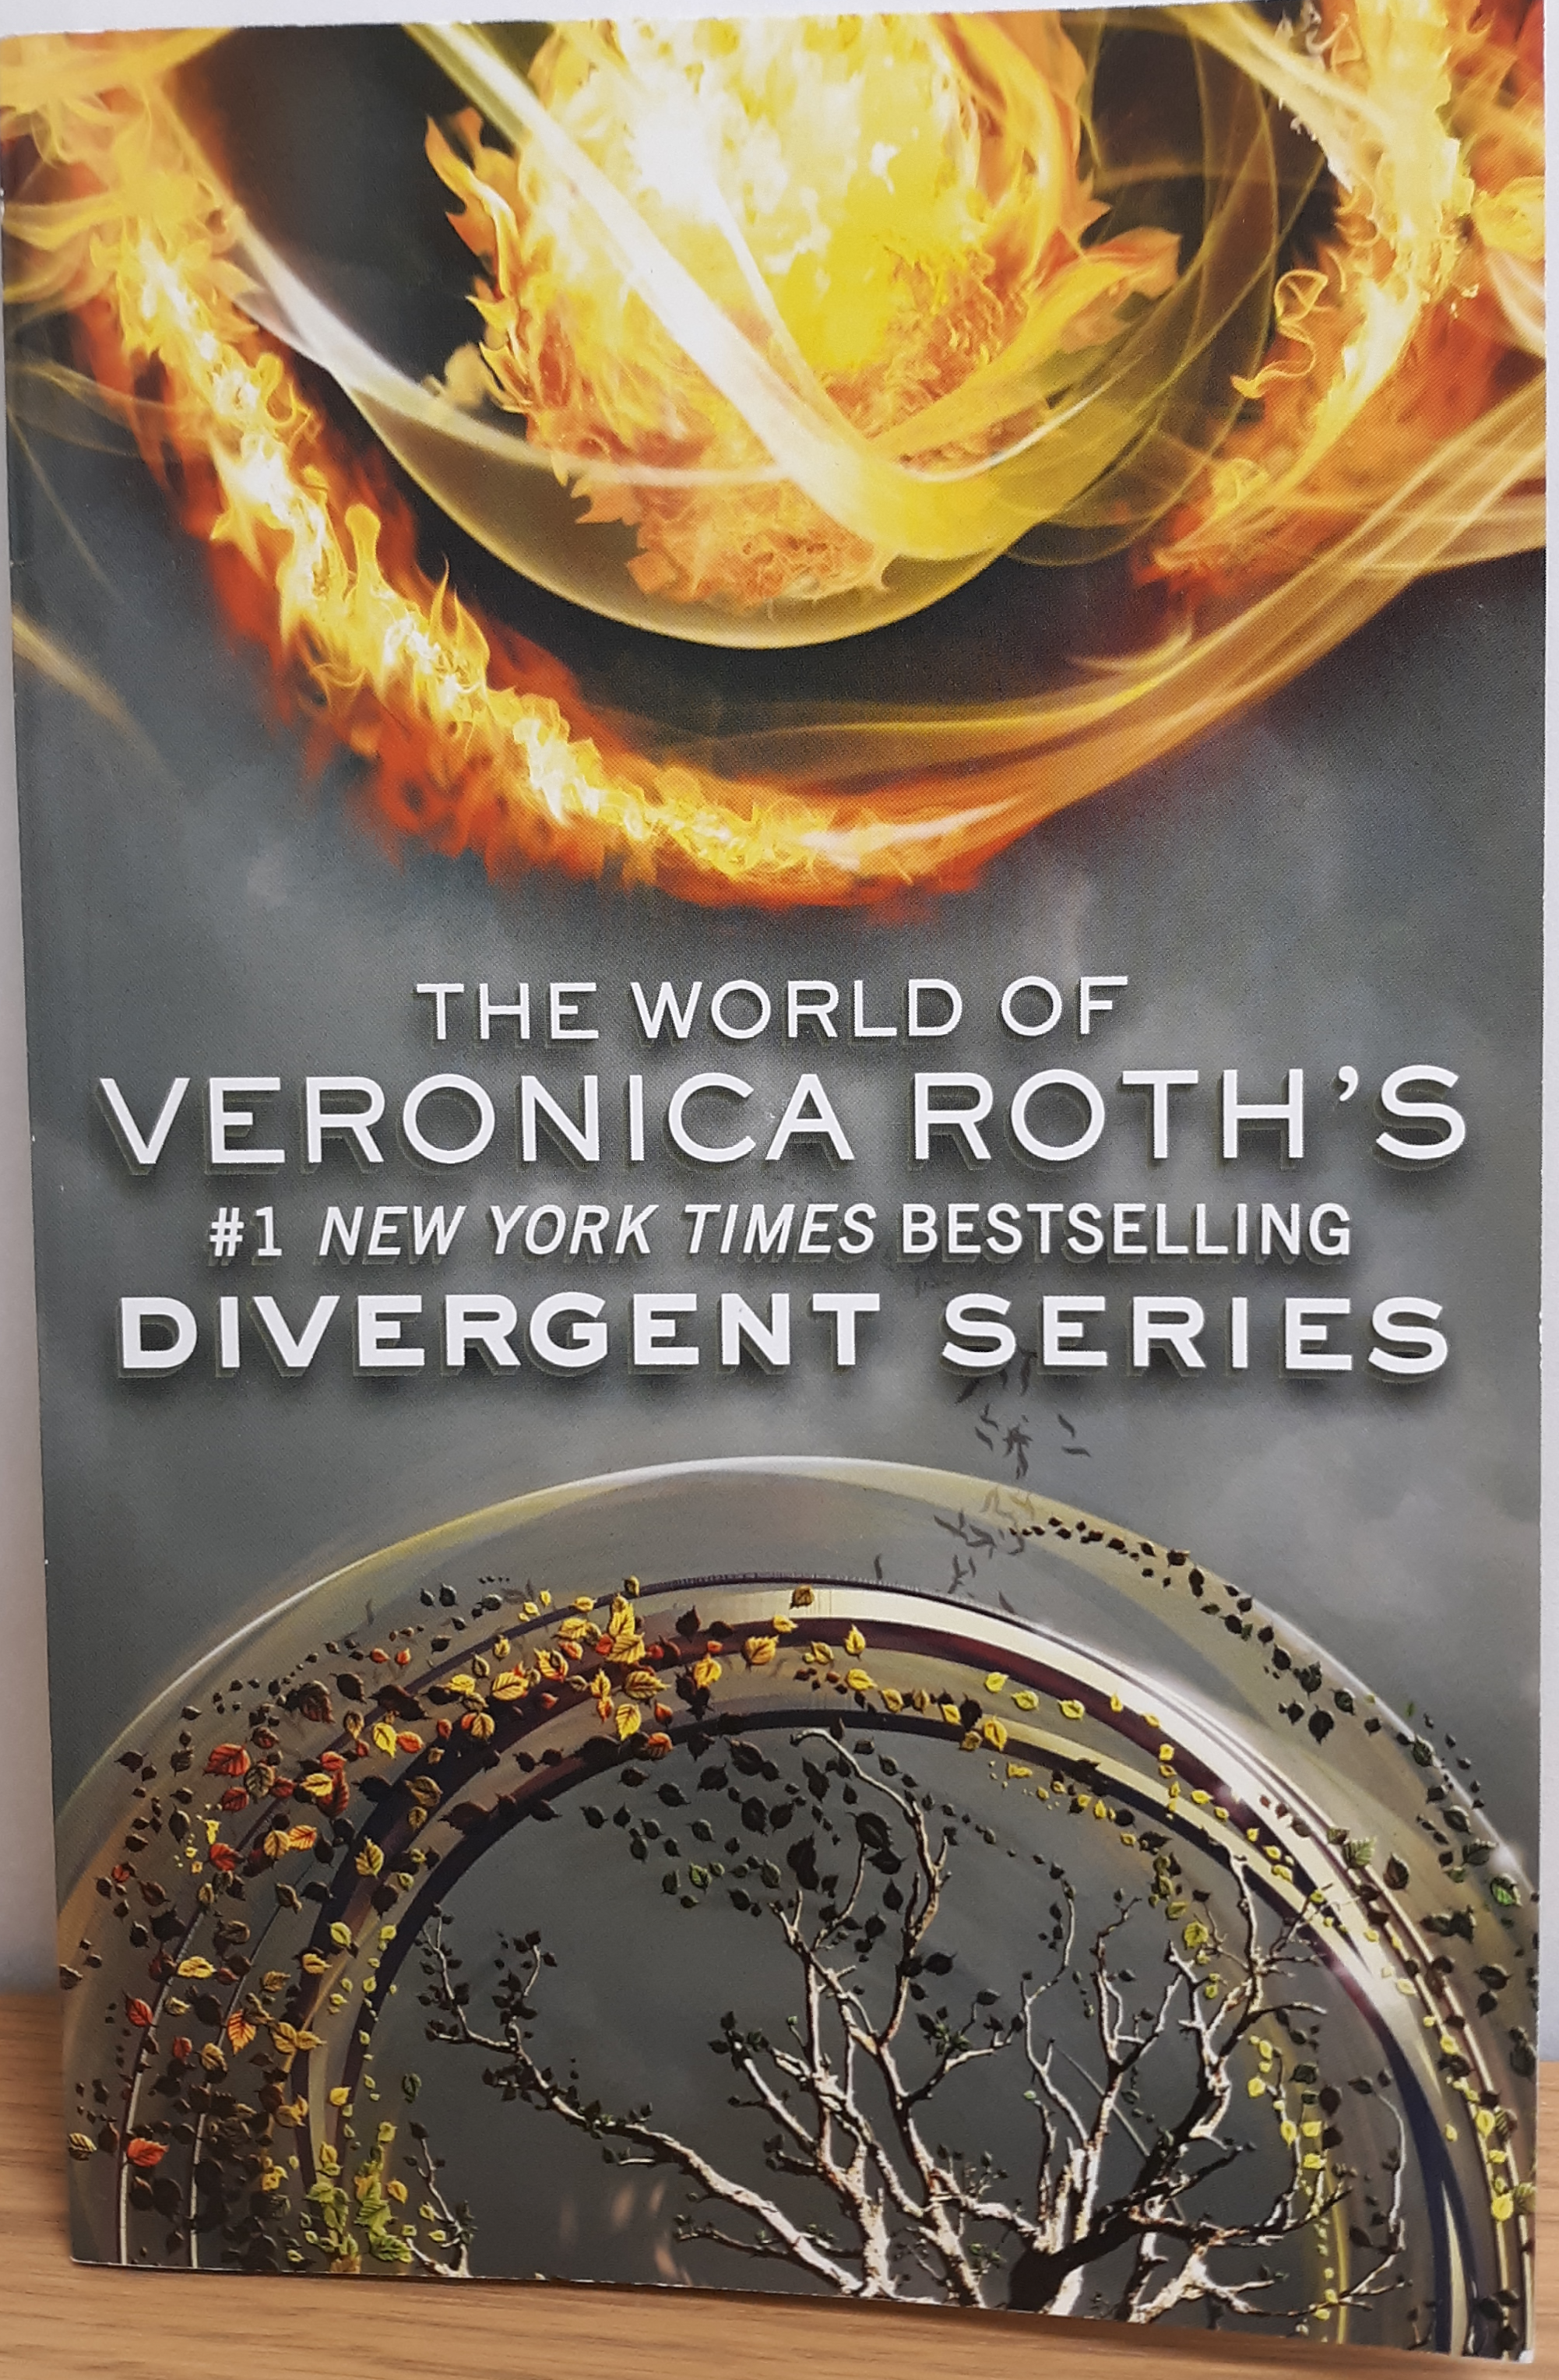 https://0201.nccdn.net/1_2/000/000/102/5a3/the-world-of-veronica-roth-s-divergent-.png